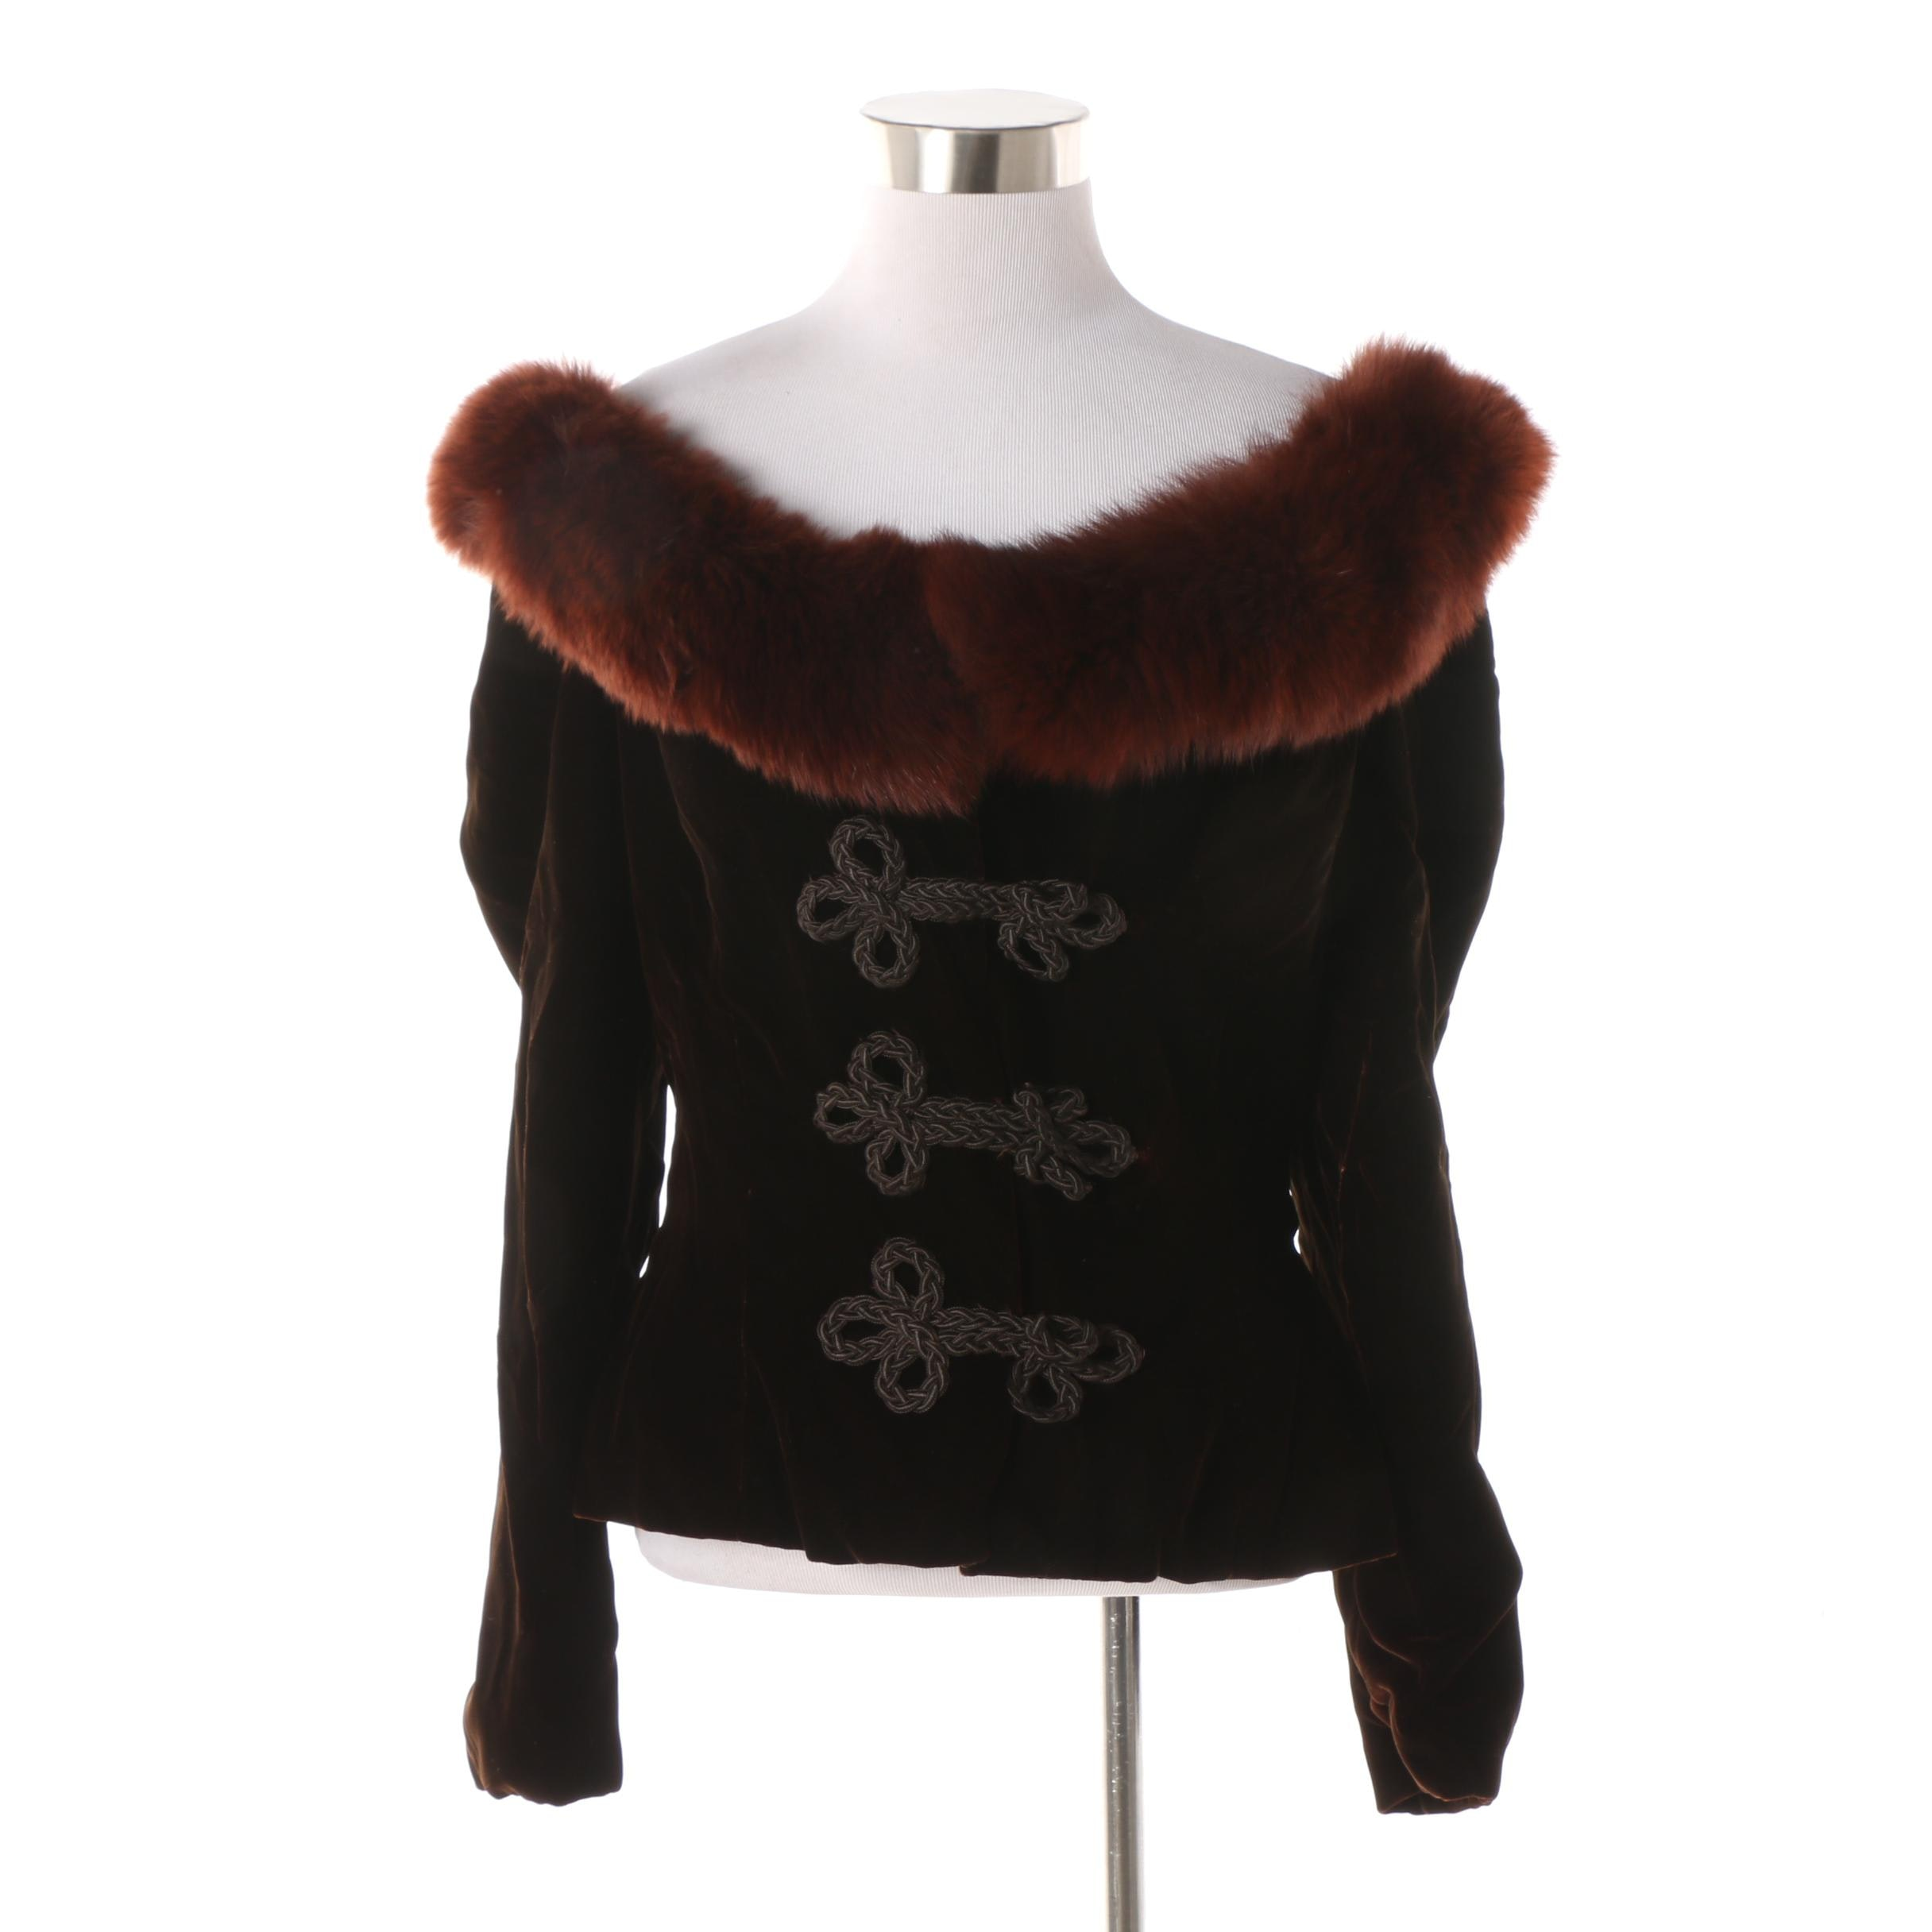 Victor Costa For Saks Fifth Avenue Brown Velvet Jacket with Fox Fur Collar